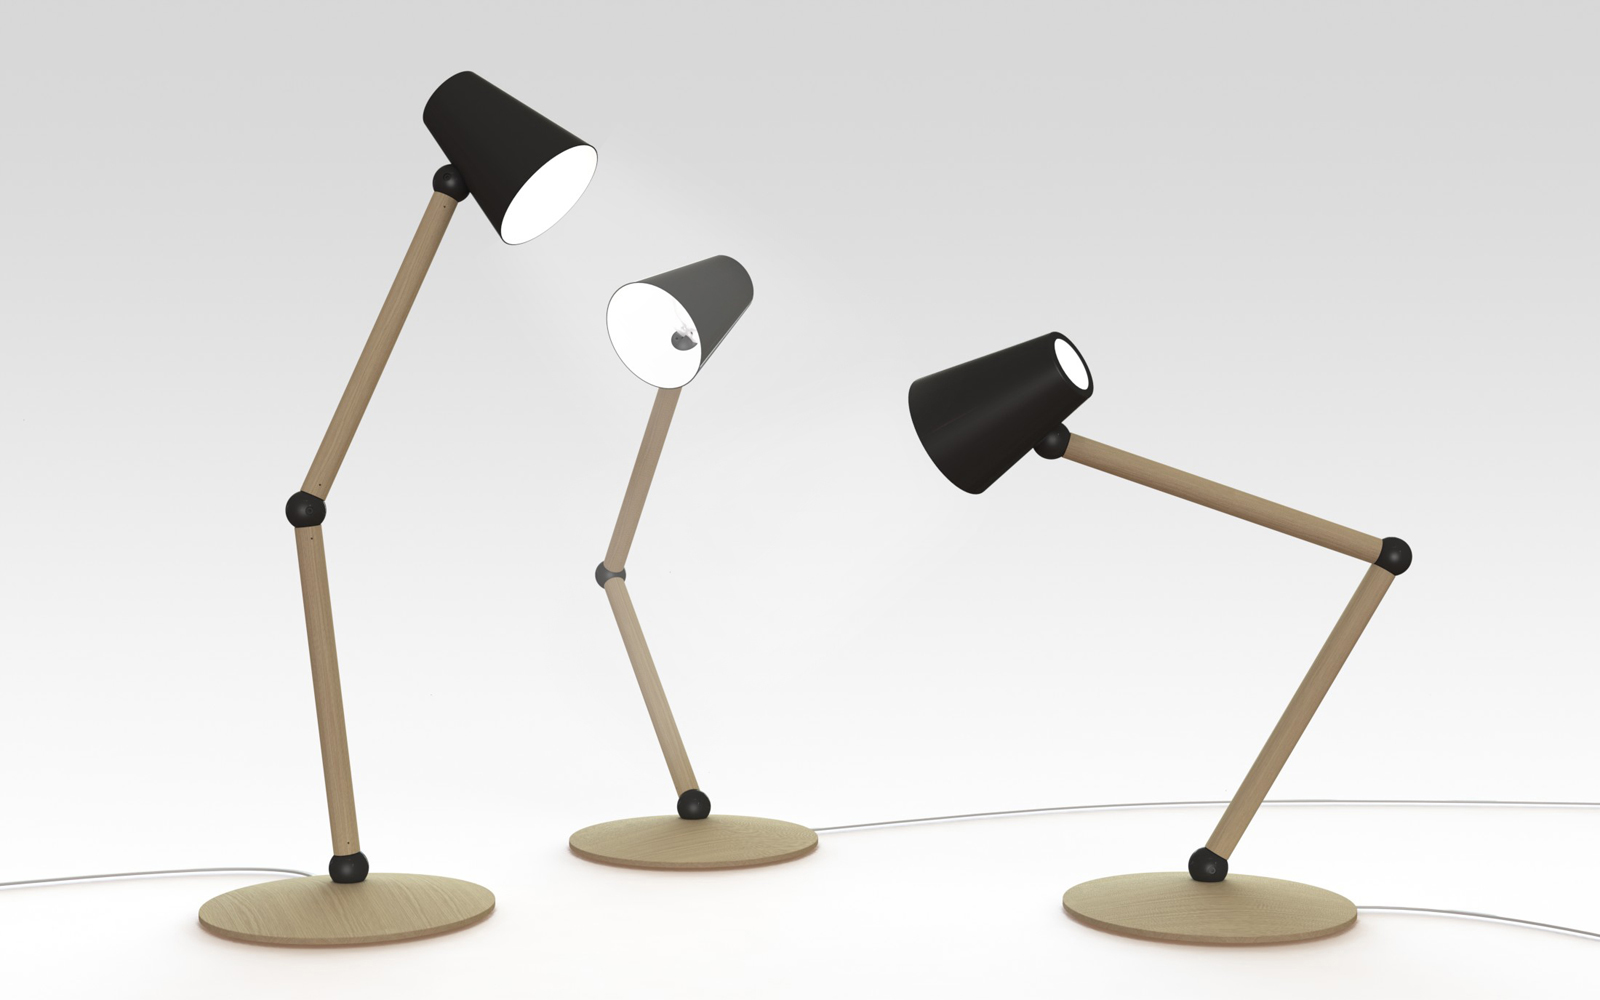 The Companion table lamp is lit by an LED bulb.